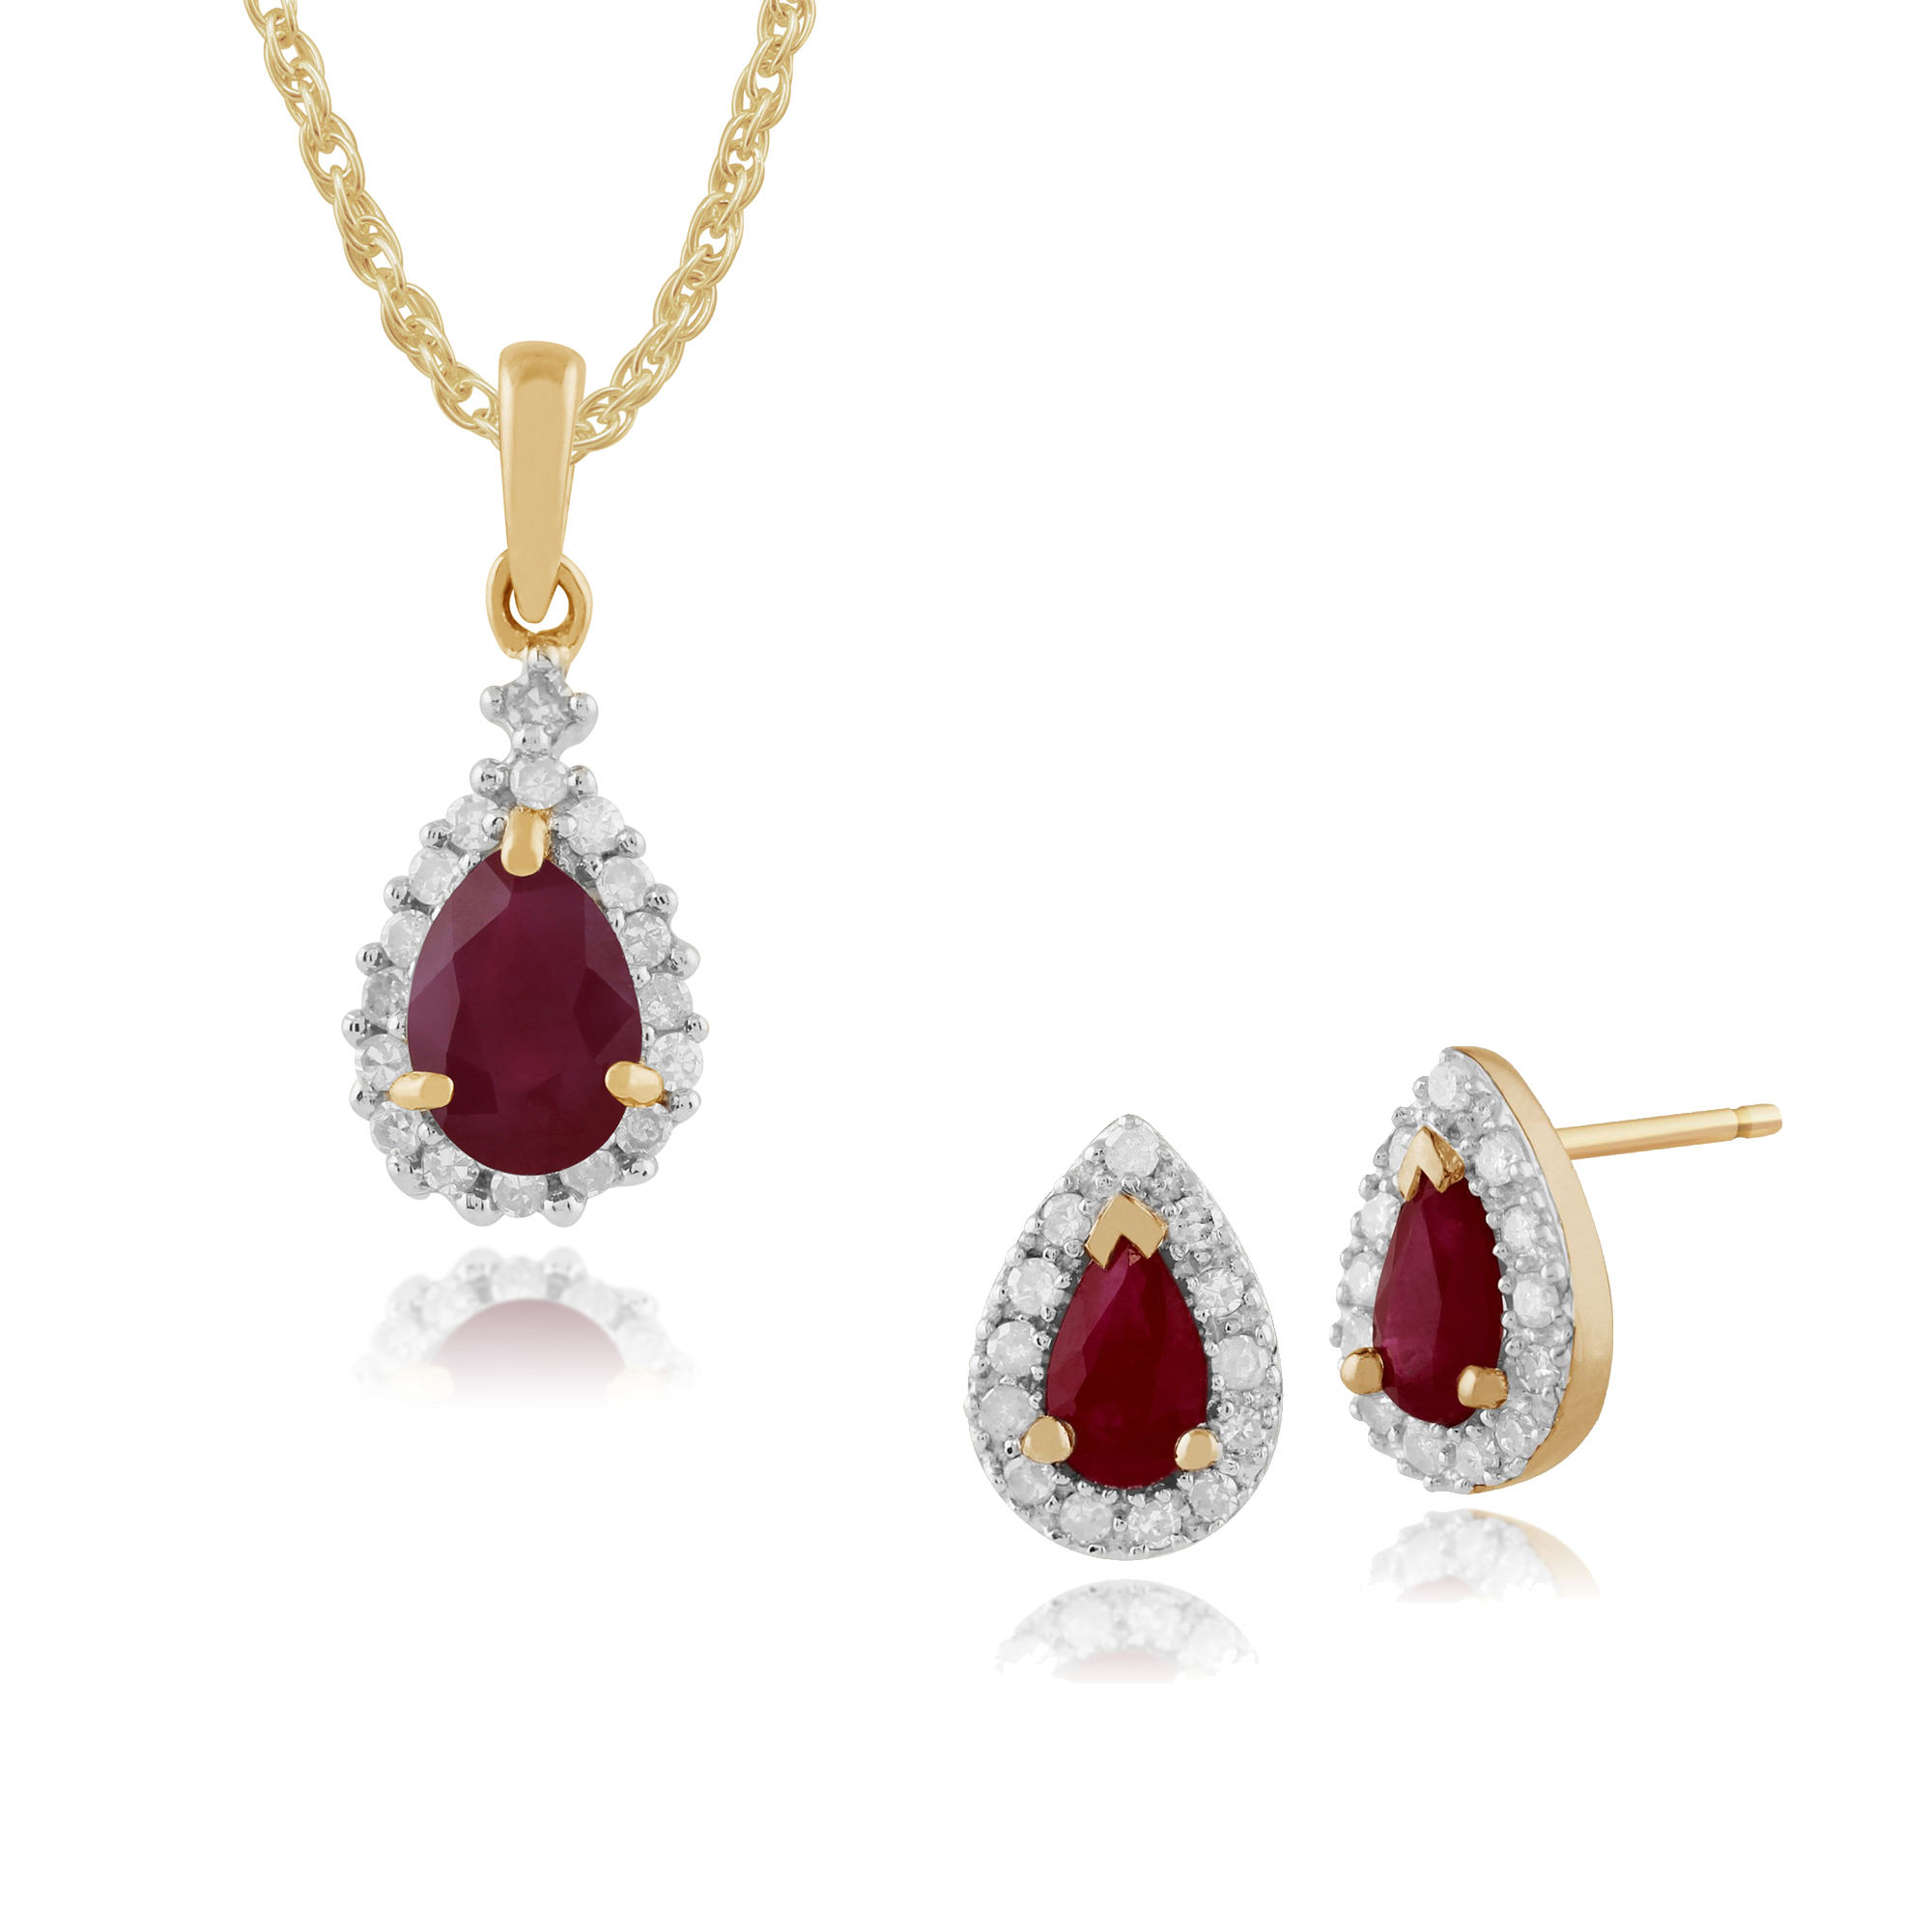 Details About Gemondo 9Ct Yellow Gold Ruby & Diamond Cluster Stud Earrings  & 45Cm Necklace Set With 2019 Ruby And Diamond Cluster Necklaces (Gallery 18 of 25)